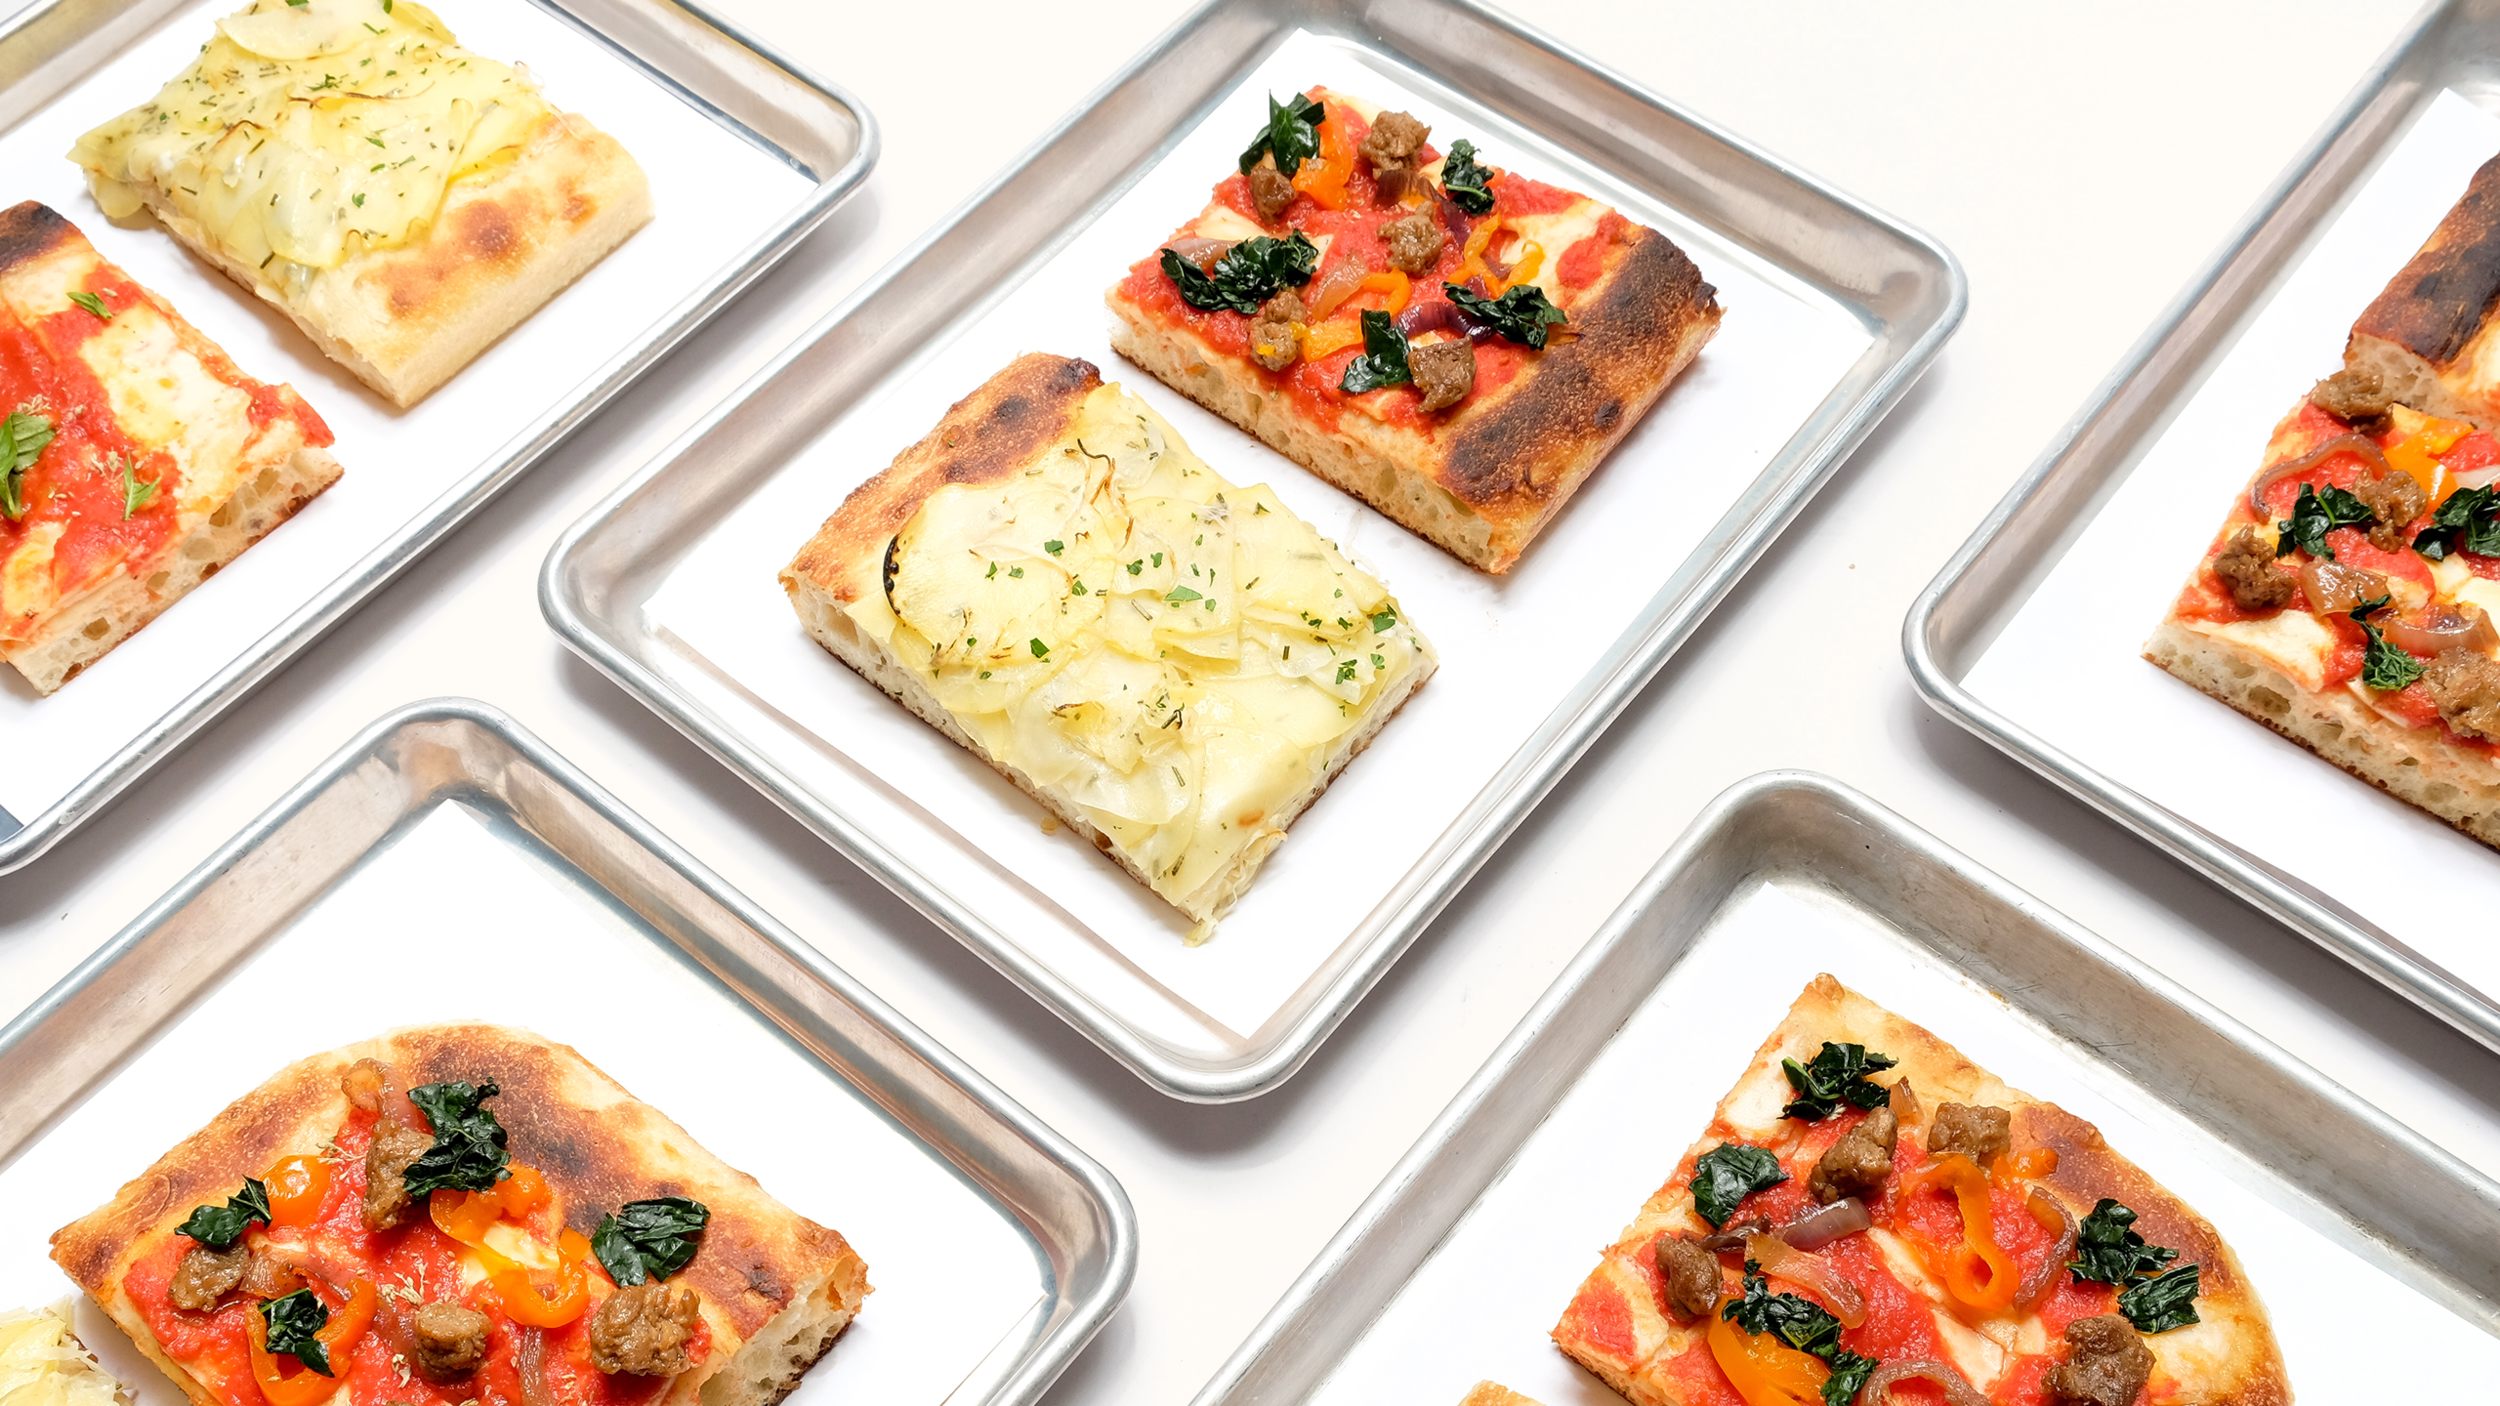 YA wants to own the square—not only through the way their pizzas looked, but what it was served on, as well as the logos and marks.